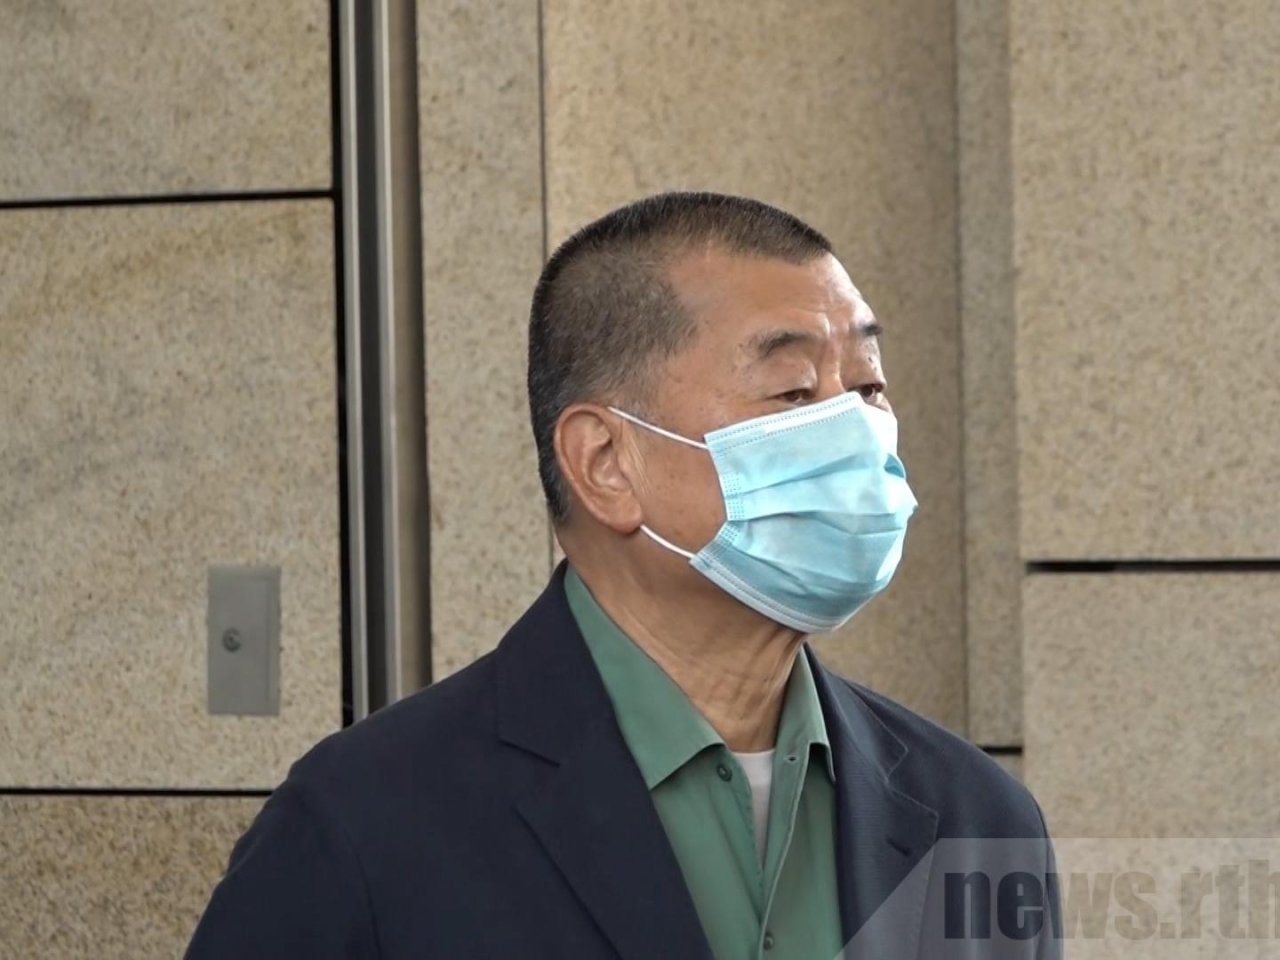 Jimmy Lai is facing three national security-related charges. File photo: RTHK